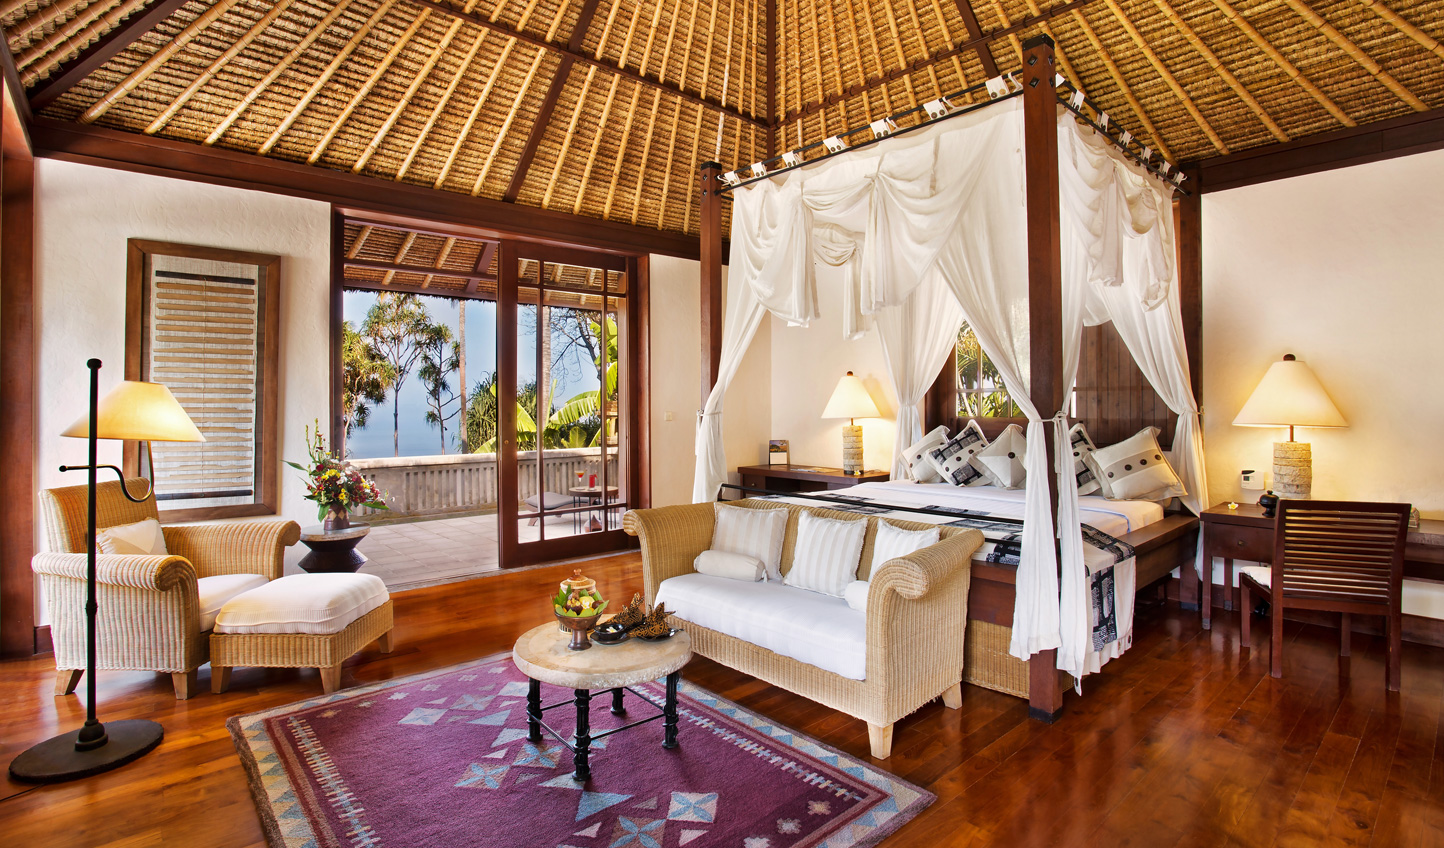 Traditional Indonesian architecture meets modern luxury at The Oberoi